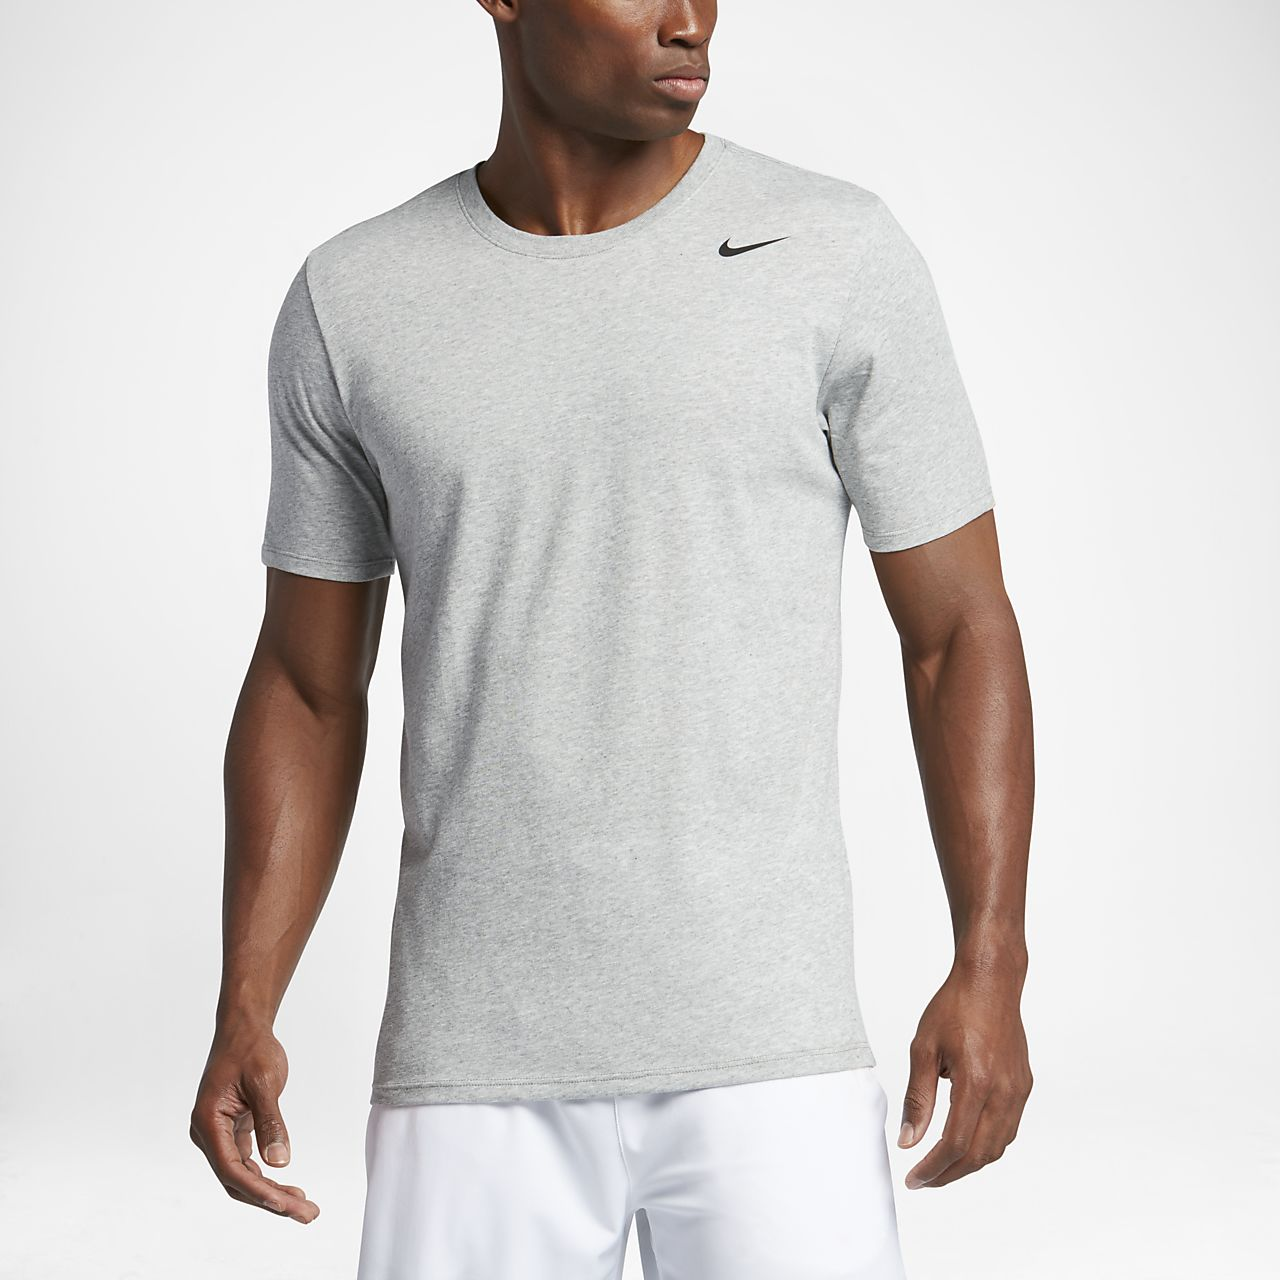 5e73b0686 Nike Dri-FIT Men's Training Short-Sleeve T-Shirt. Nike.com AU